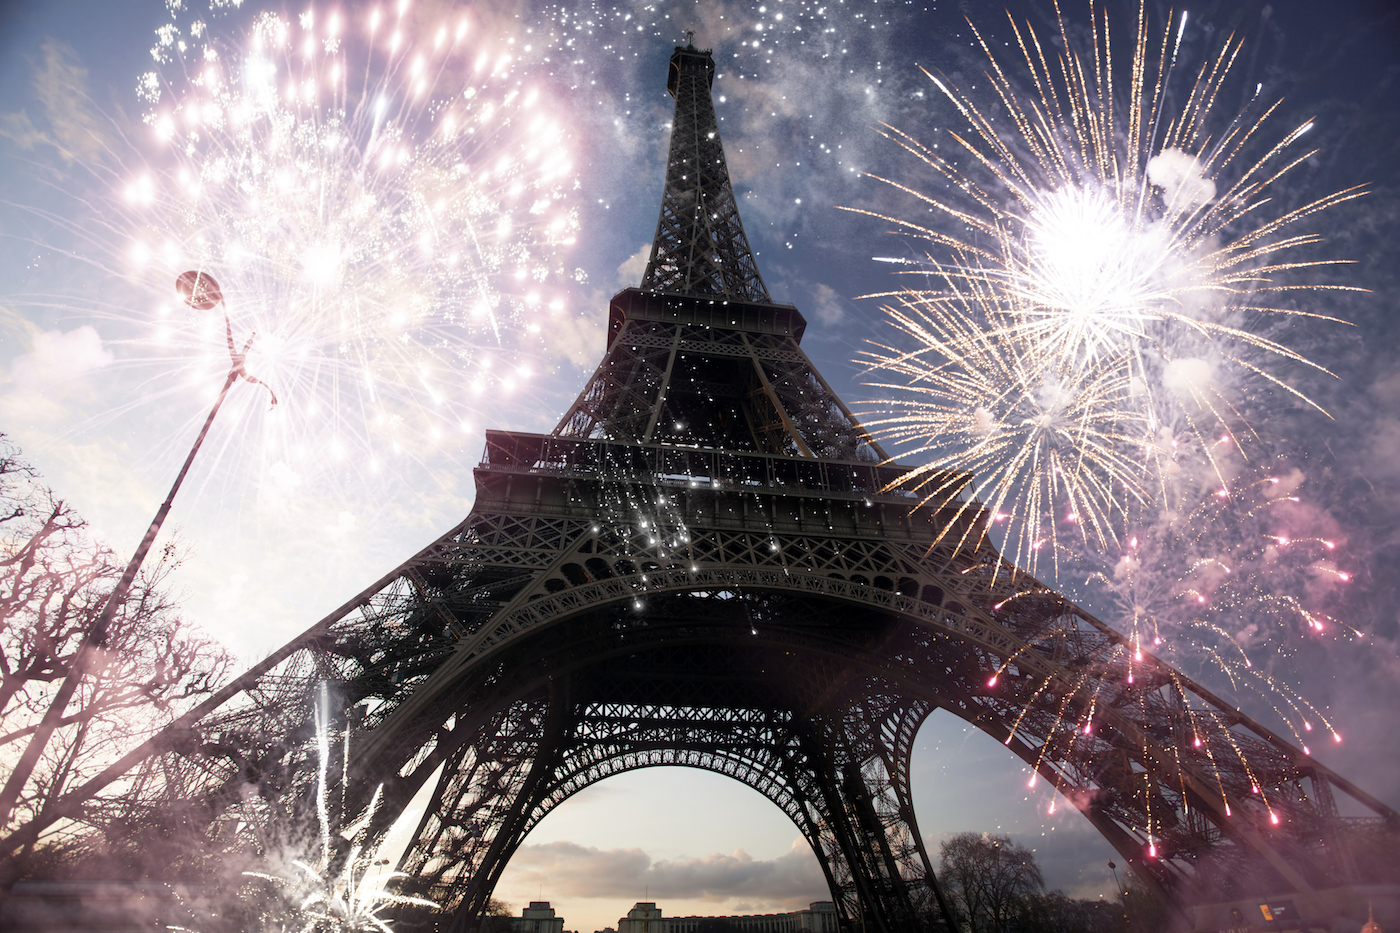 Eiffel Tower at New Year's, simply stunning